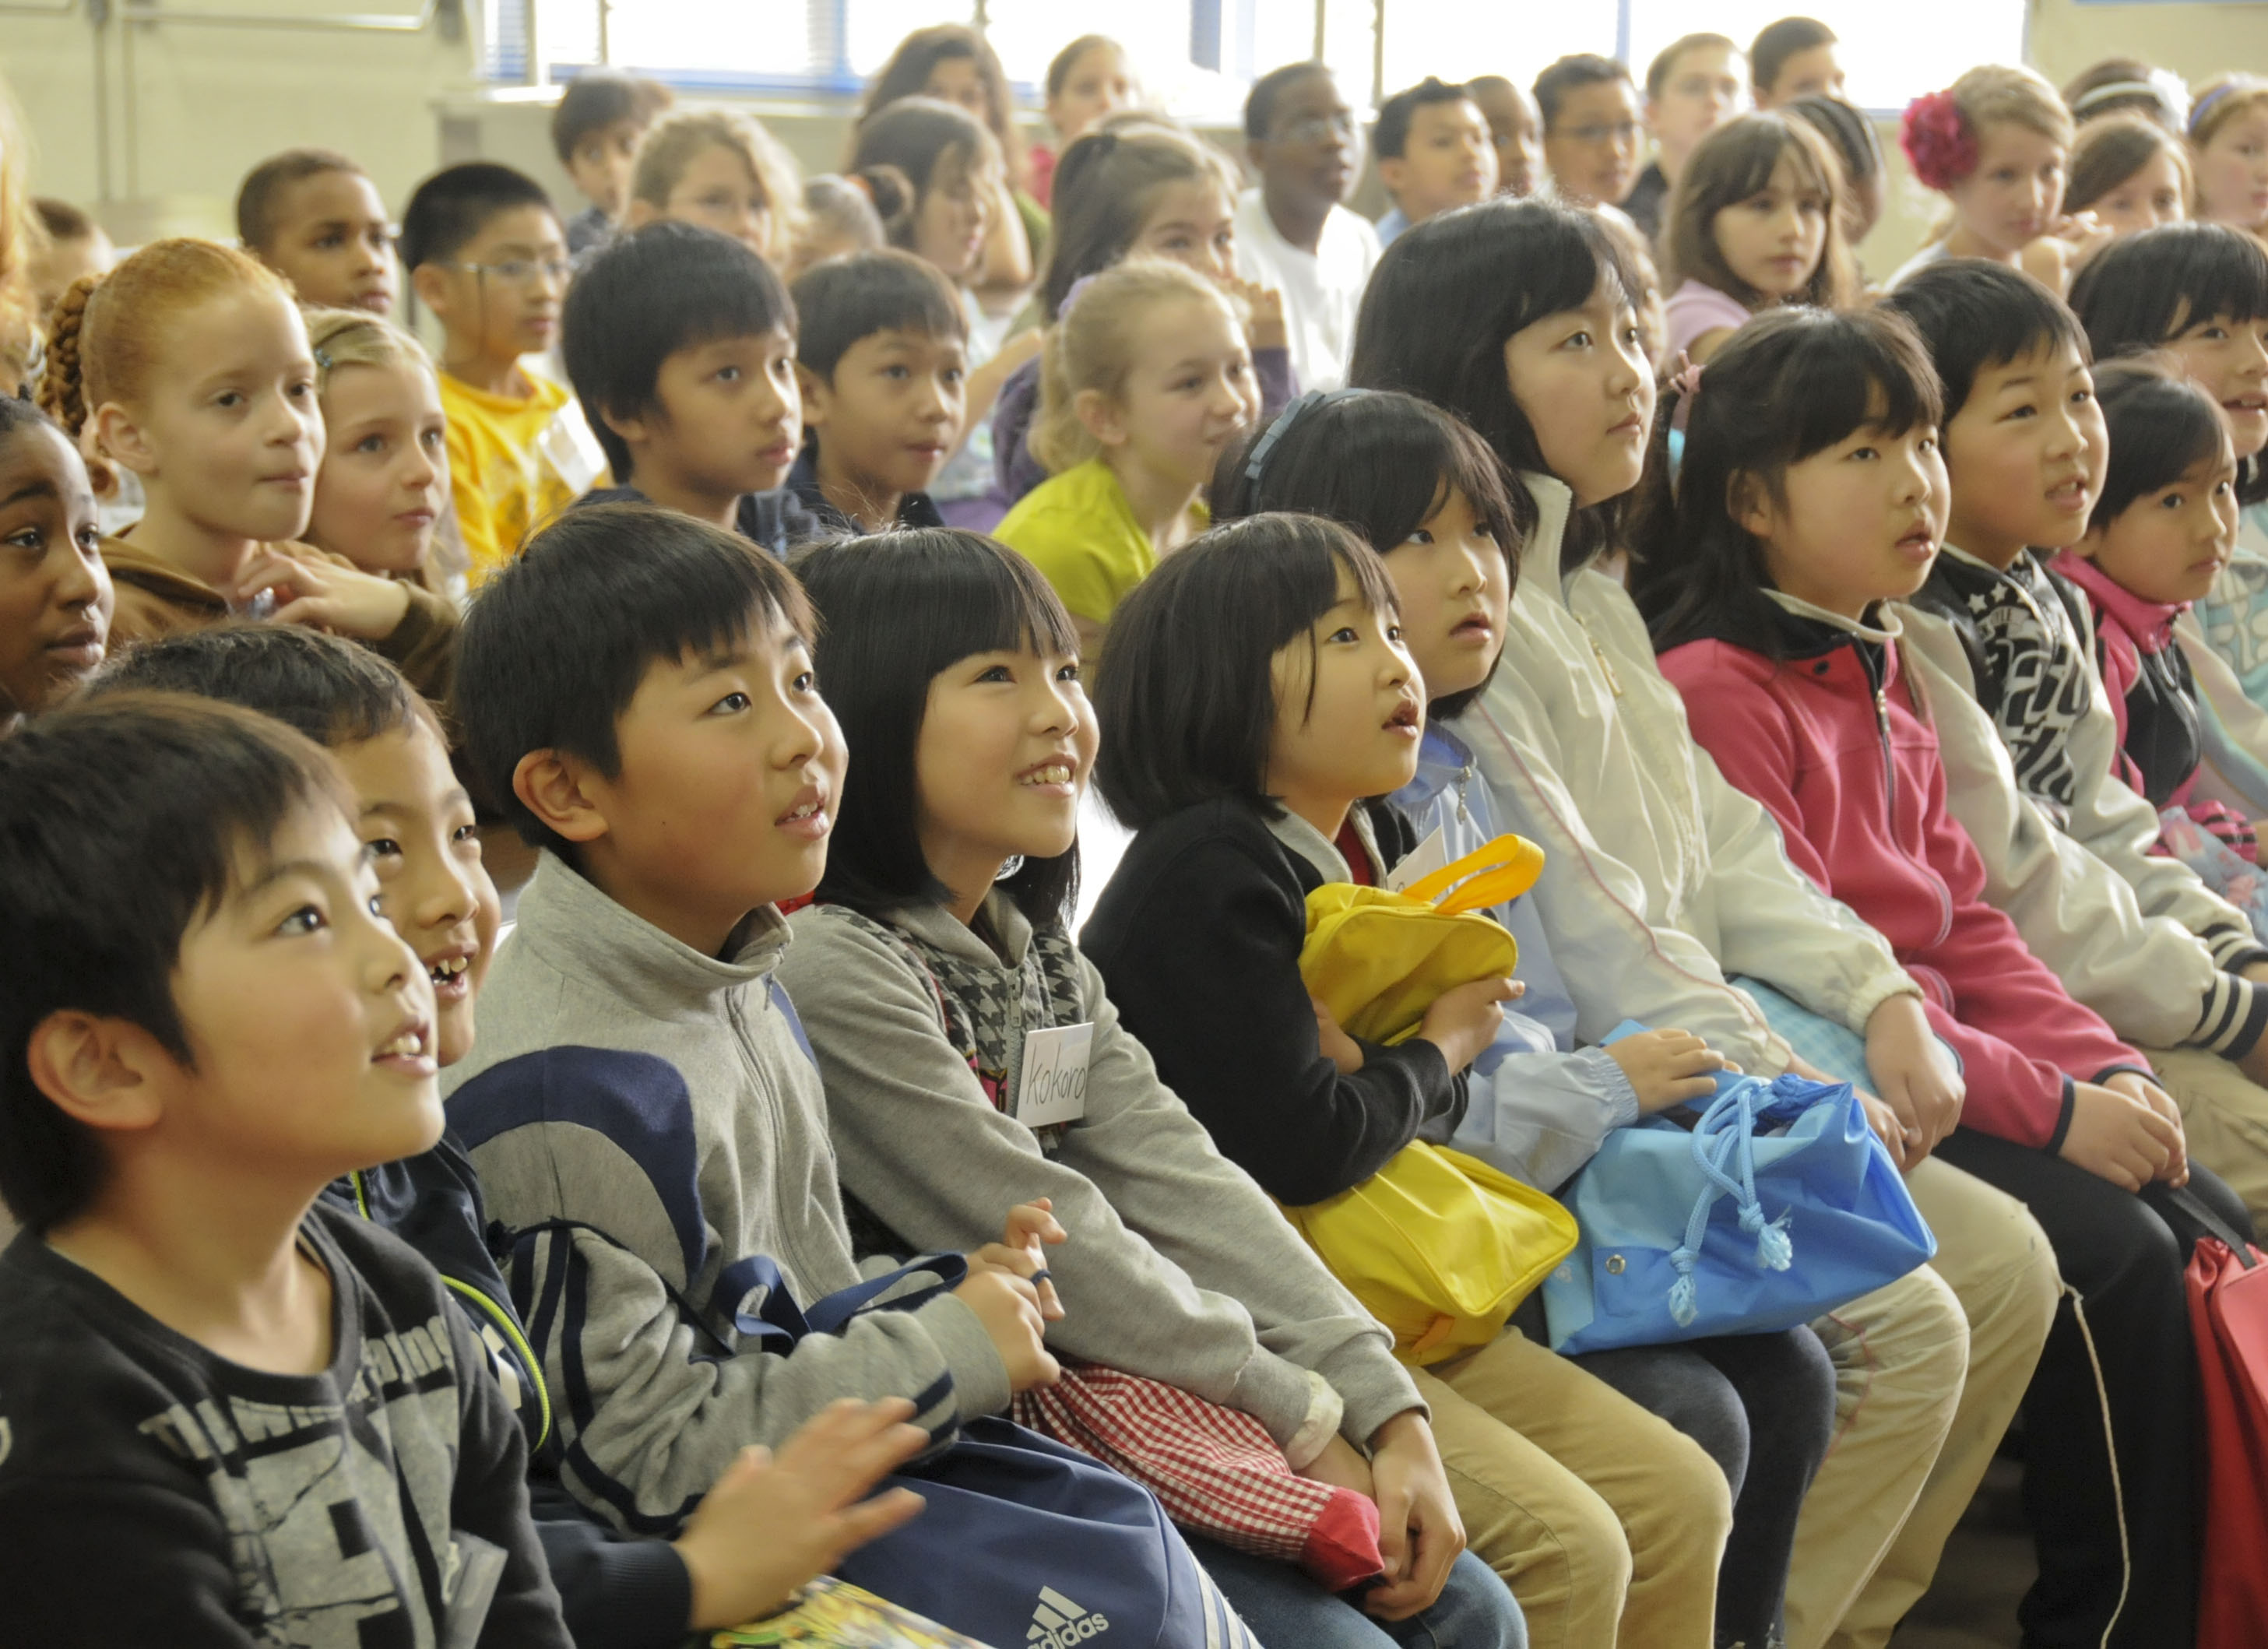 Japanese Children Experience American School For The Day Gt 5th Air Force Gt Article Display